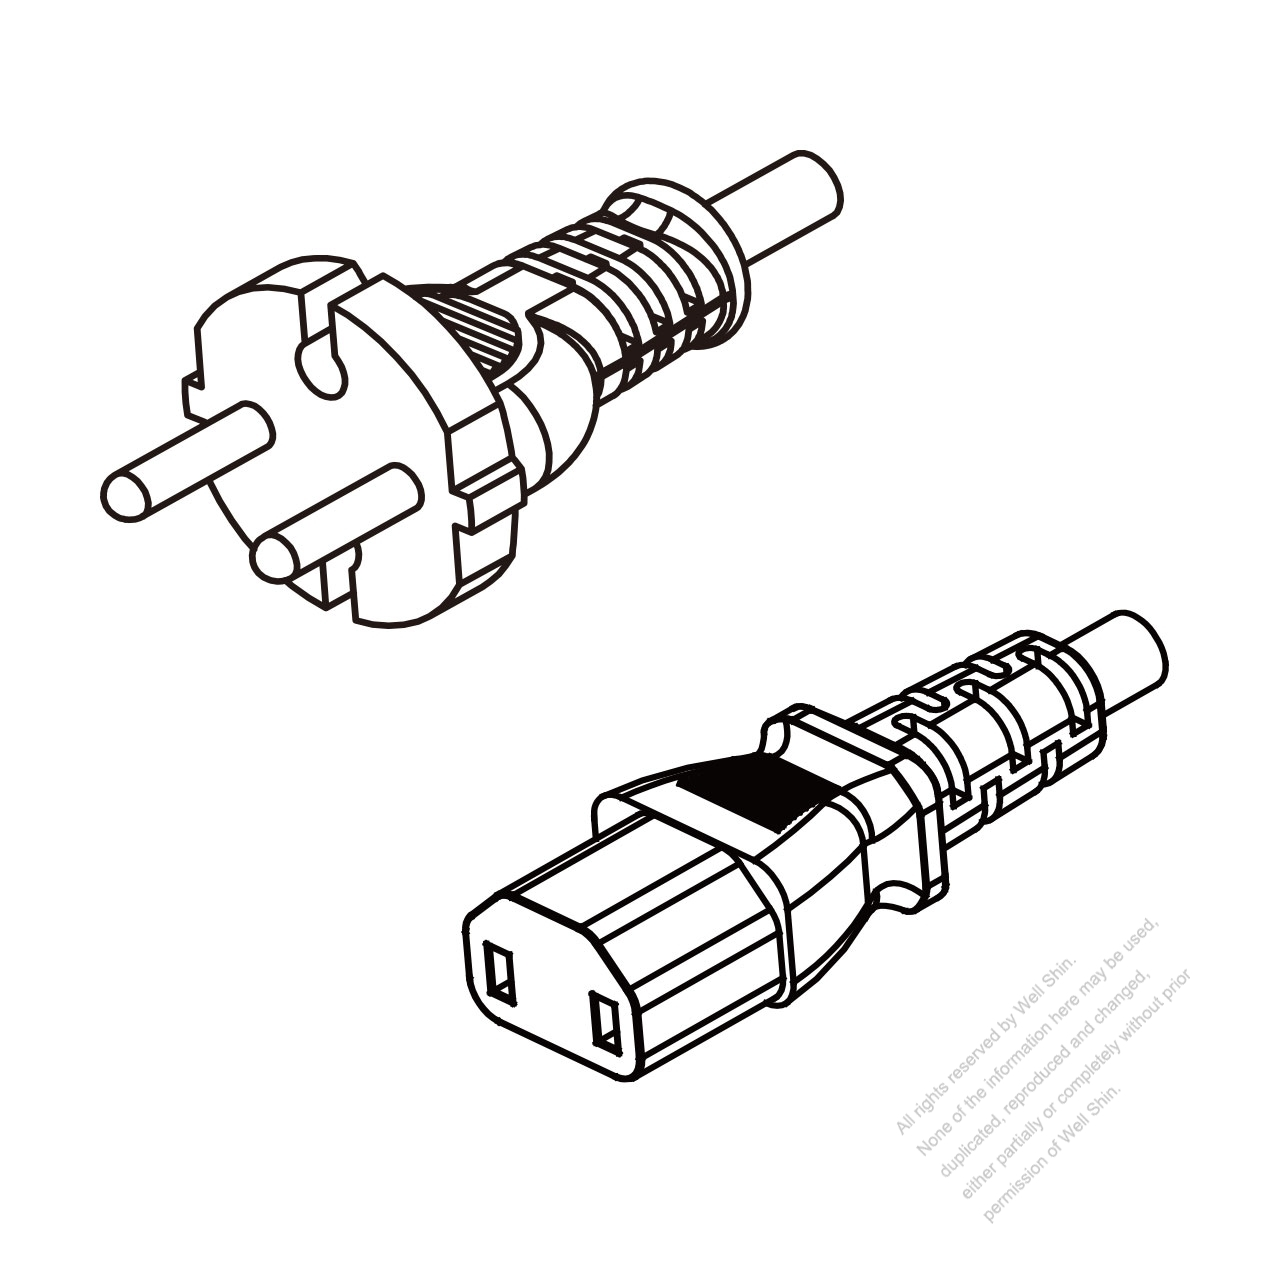 Europe 2 Pin Plug To Iec 320 C17 Ac Power Cord Set Molding